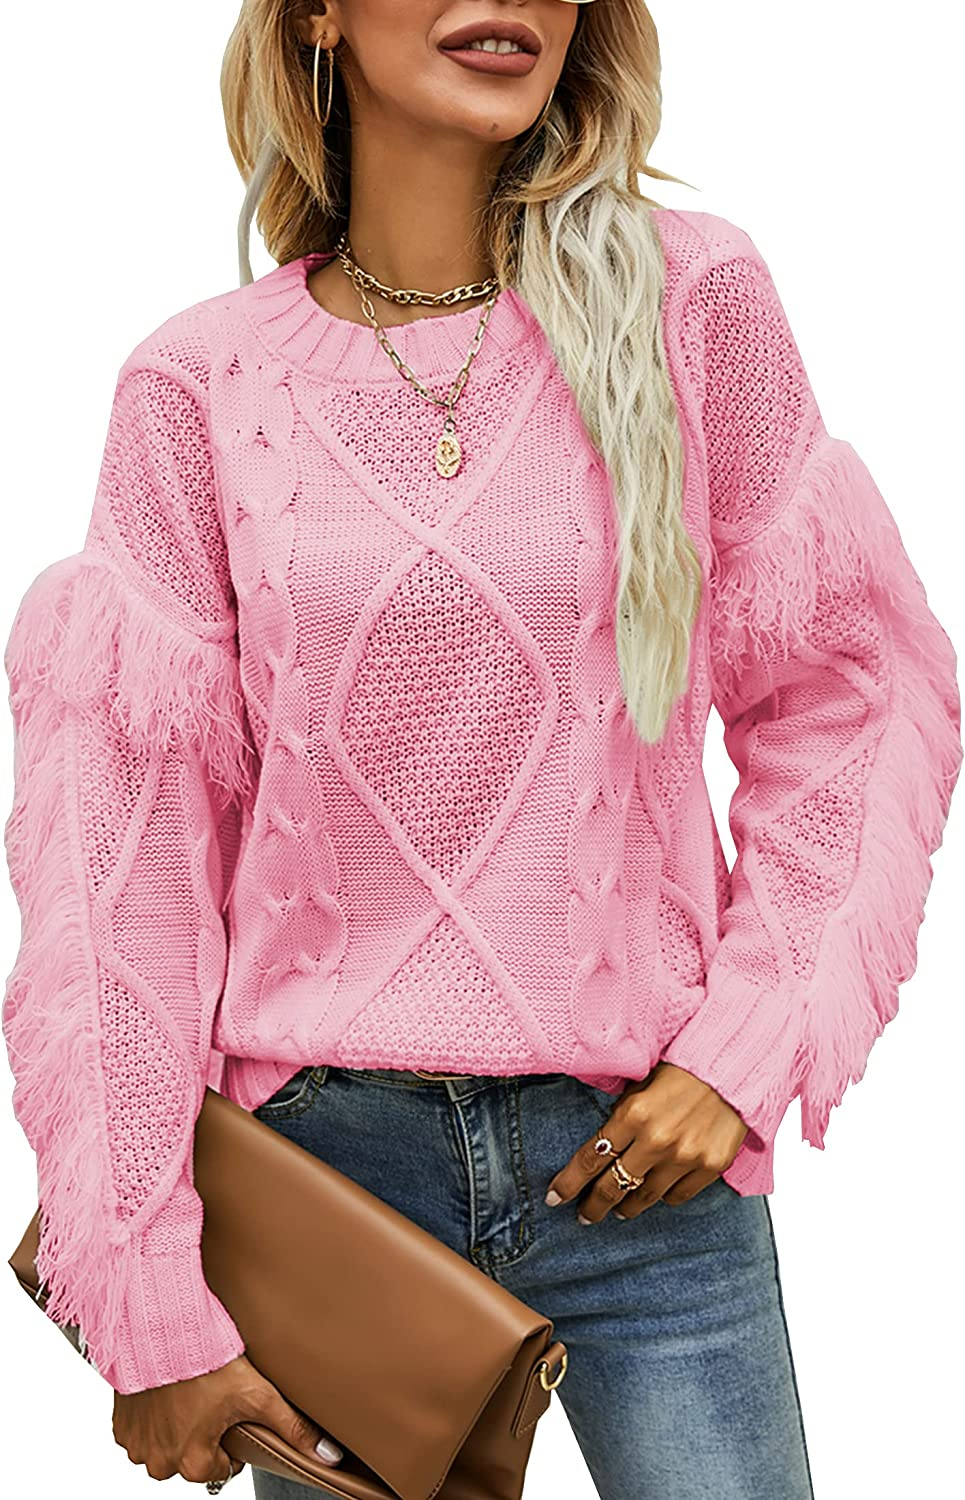 Theenkoln Women's Sweaters Casual Crew Neck Cable Knit Solid Long Sleeve Fringe Pullover Sweater Tops